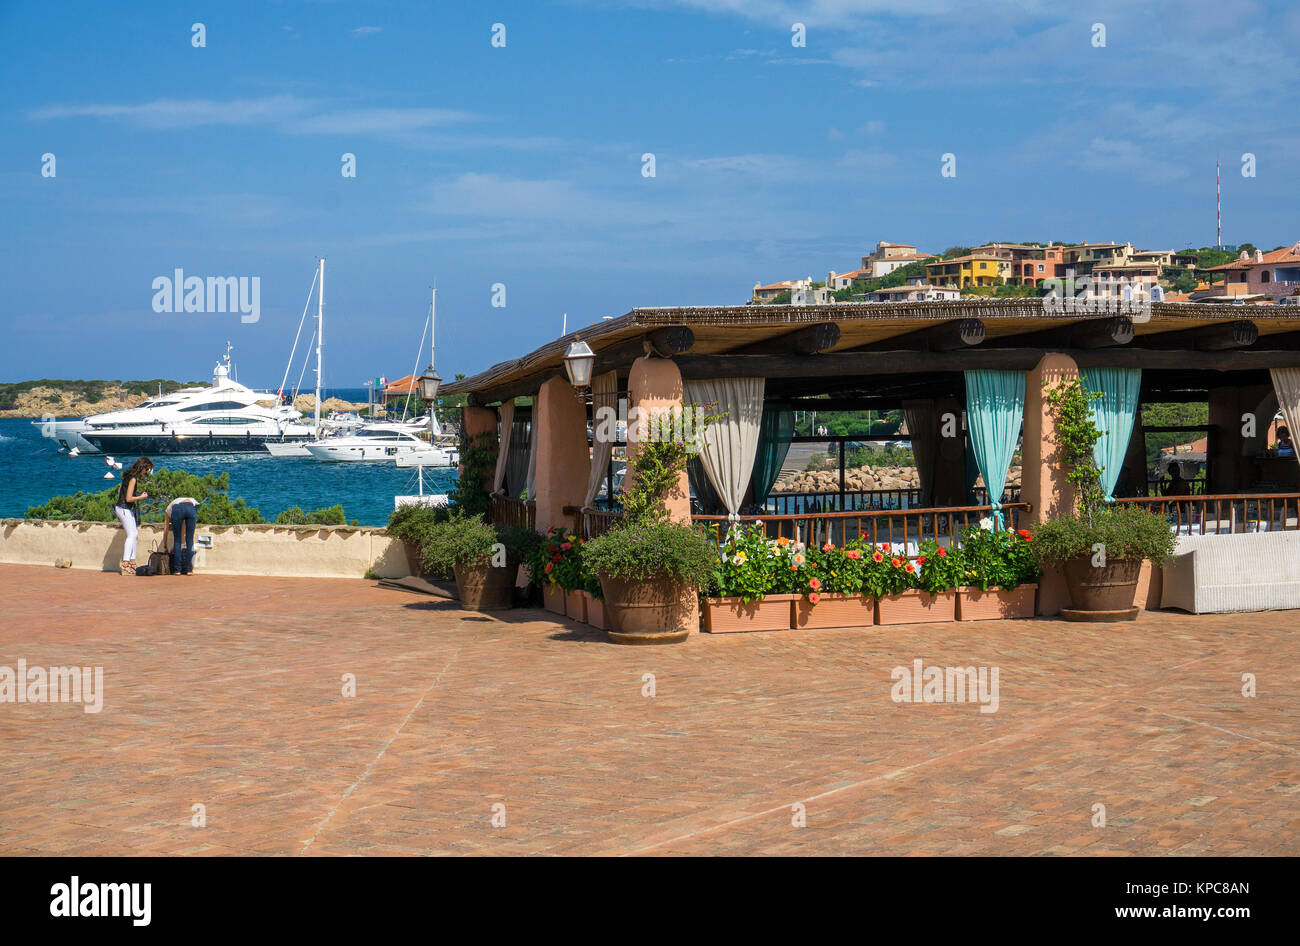 Restaurant with harbour view at Porto Cervo, luxury destination at Costa Smeralda, Sardinia, Italy, Mediterranean - Stock Image